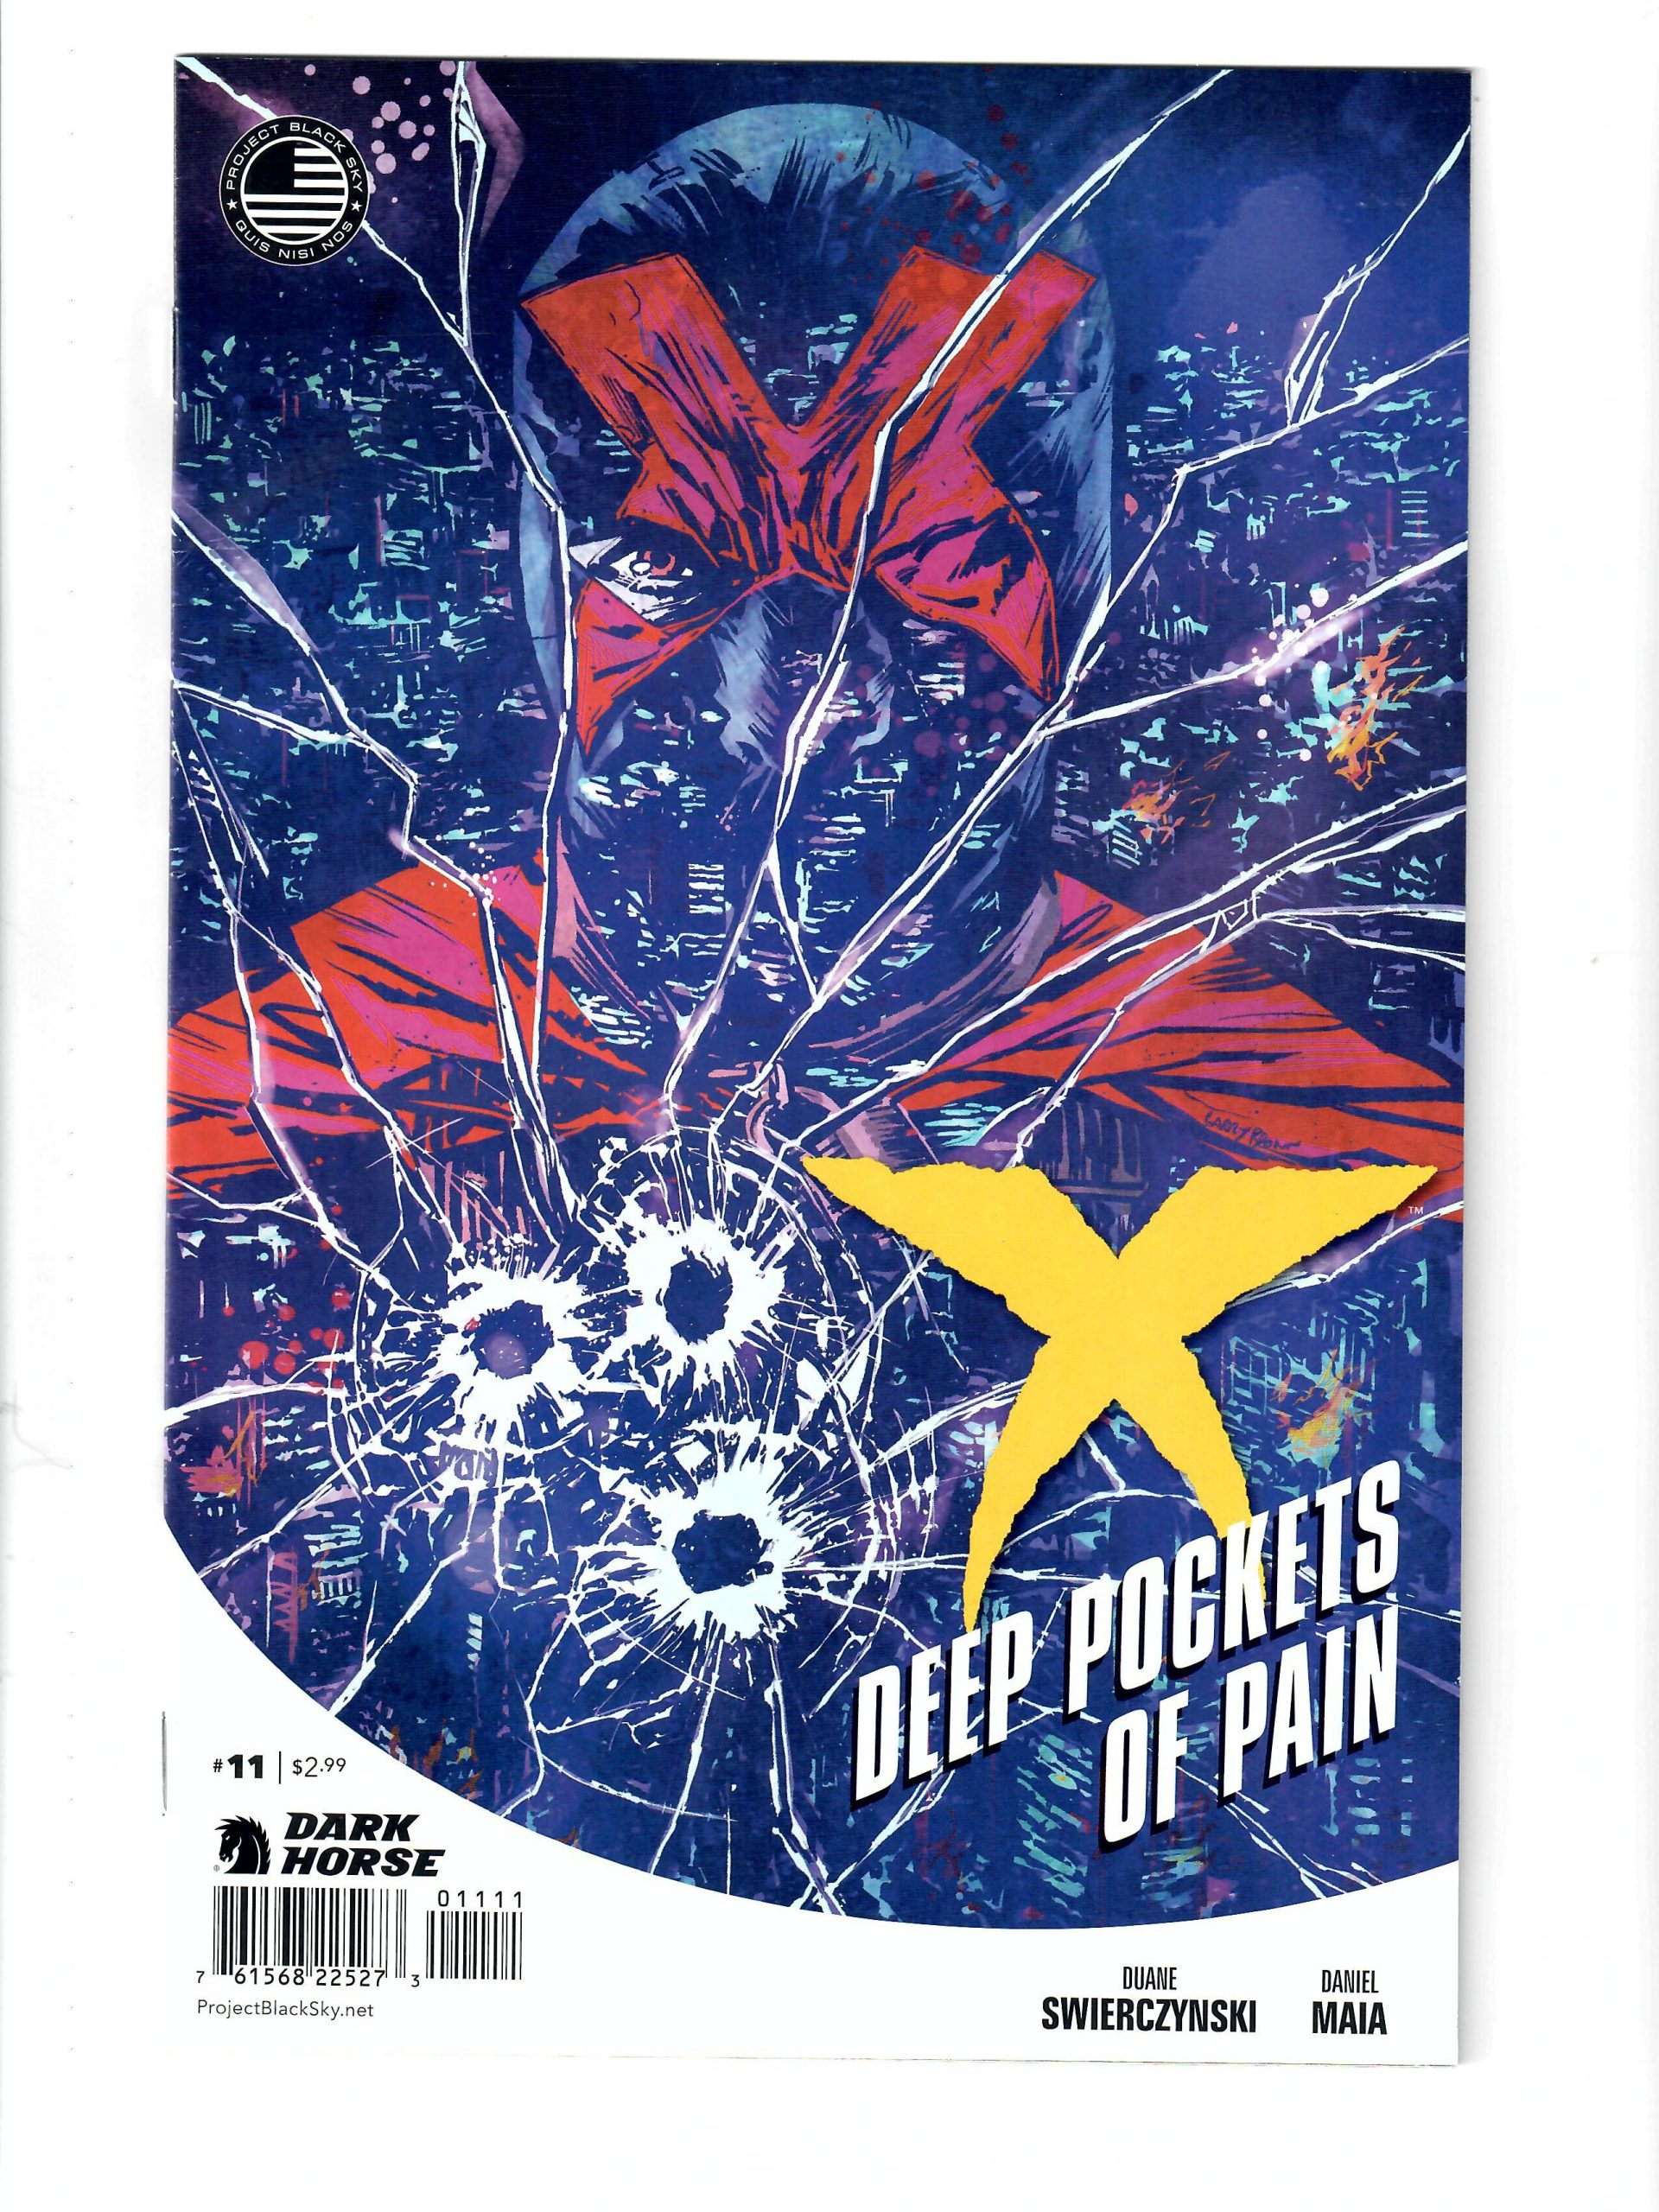 DARK HORSE COMICS X DEEP POCKETS OF PAIN #11 MARCH 2014 COMIC #159218-7